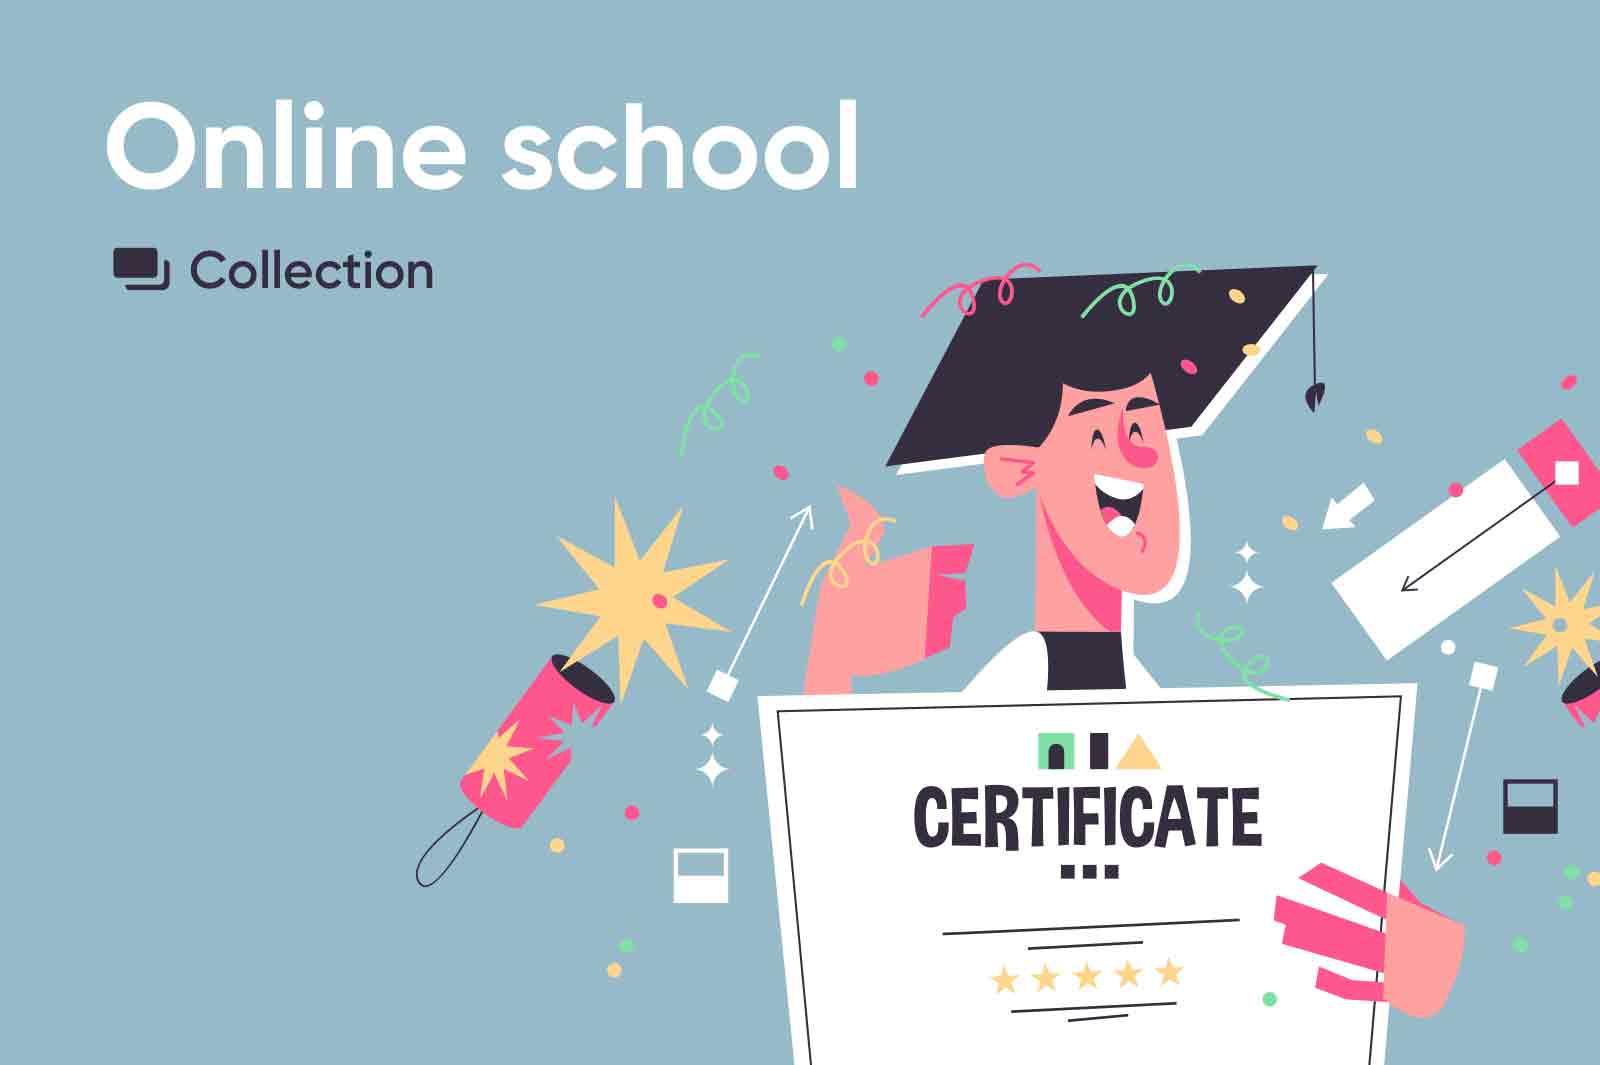 Vector character illustrations related to online education. Exclusively on kit8.net